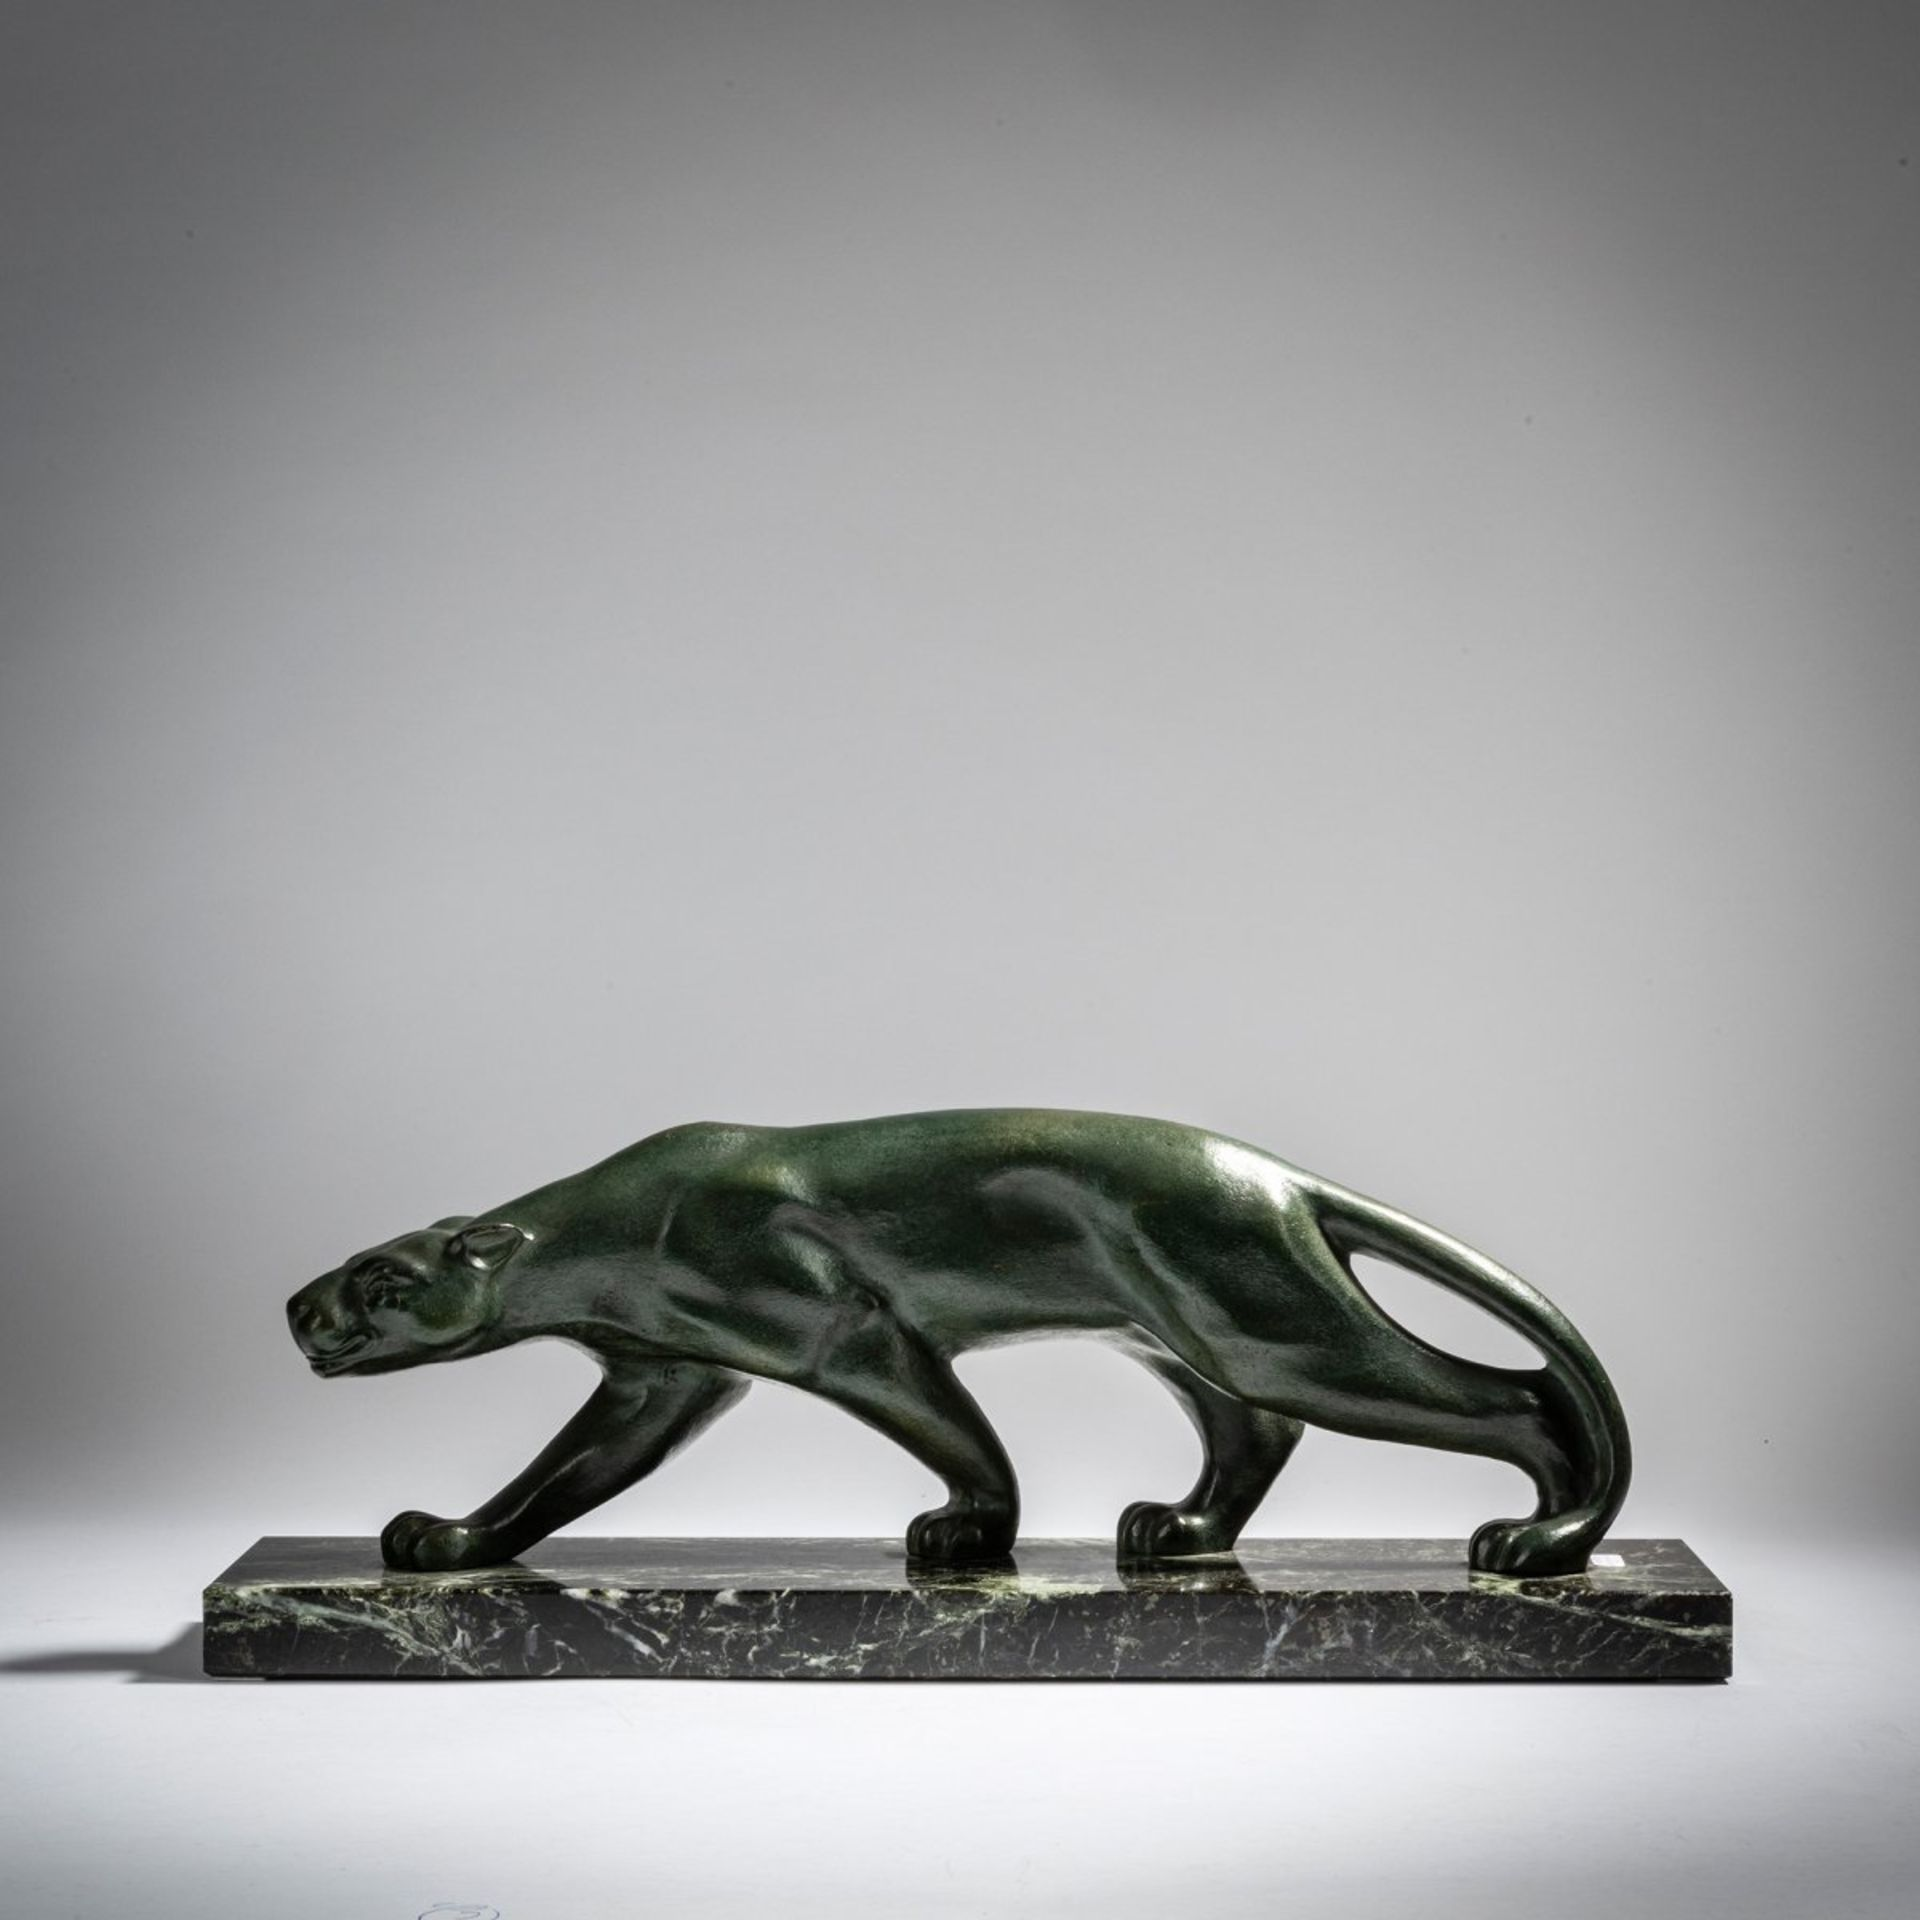 Andrea Secondo, Panther, um 1928